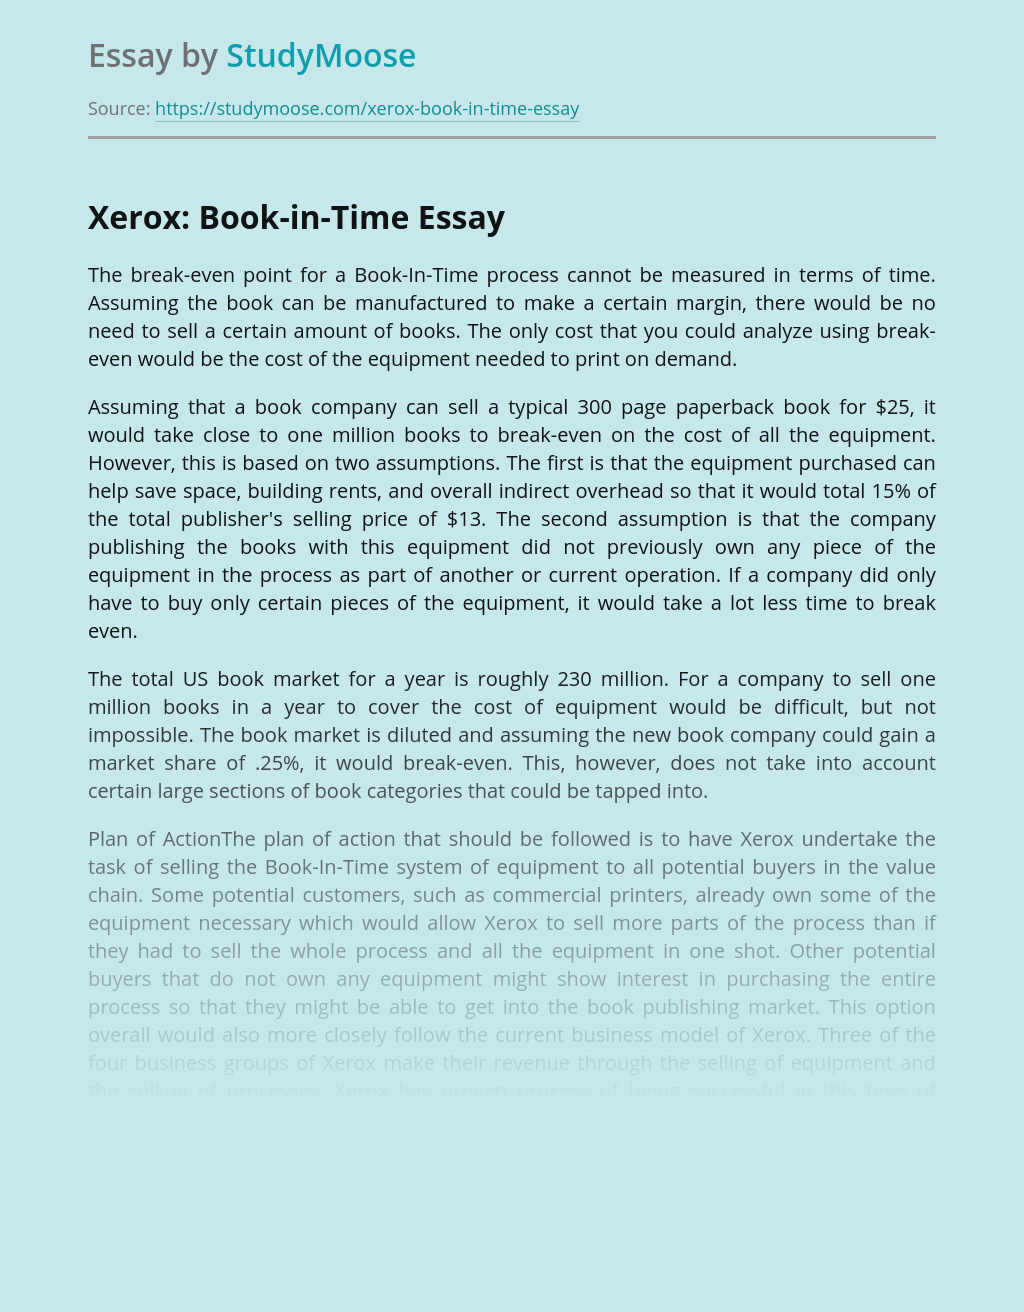 Xerox: Book-in-Time Company Risk Management Plan